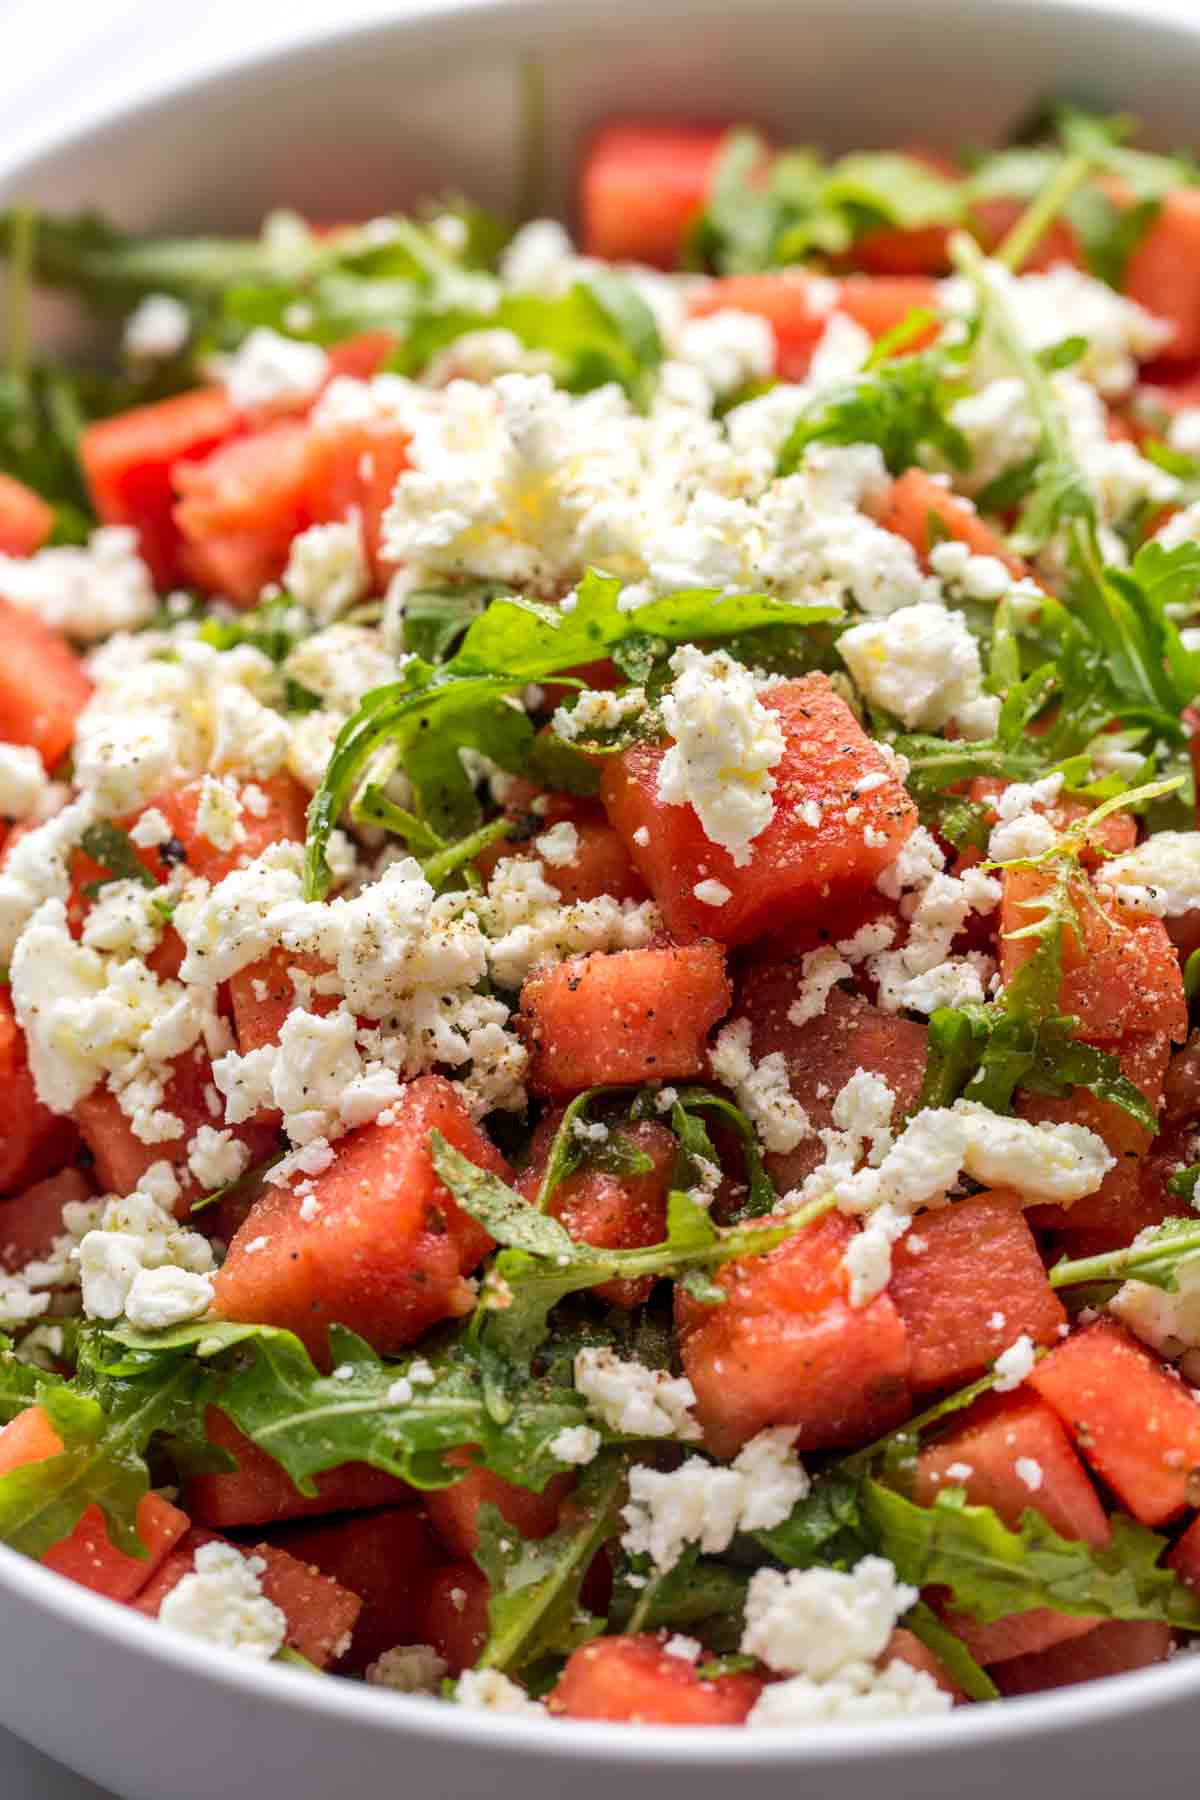 Watermelon Salad With Feta for Incredible Summer Salad Recipes